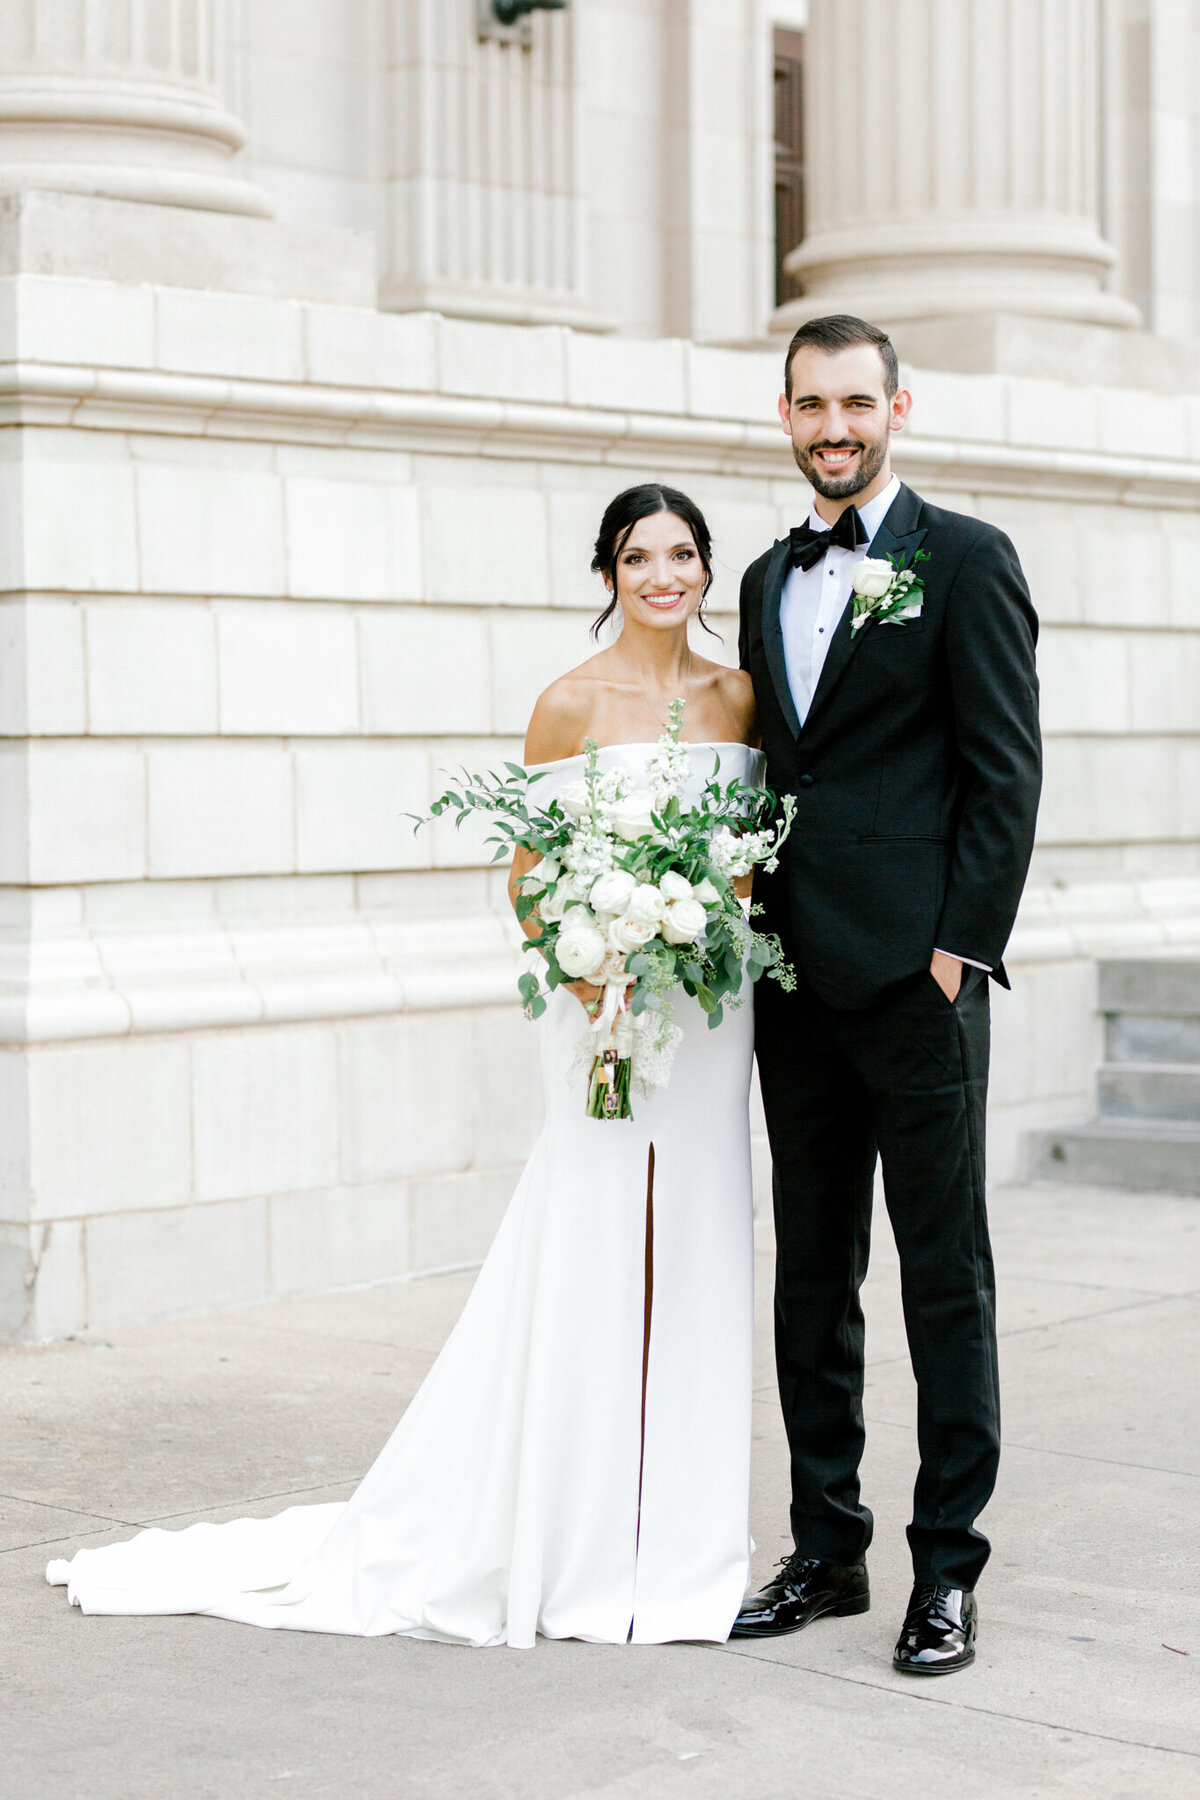 Hope & Zack's Wedding at the Carlisle Room | Dallas Wedding Photographer | Sami Kathryn Photography-1